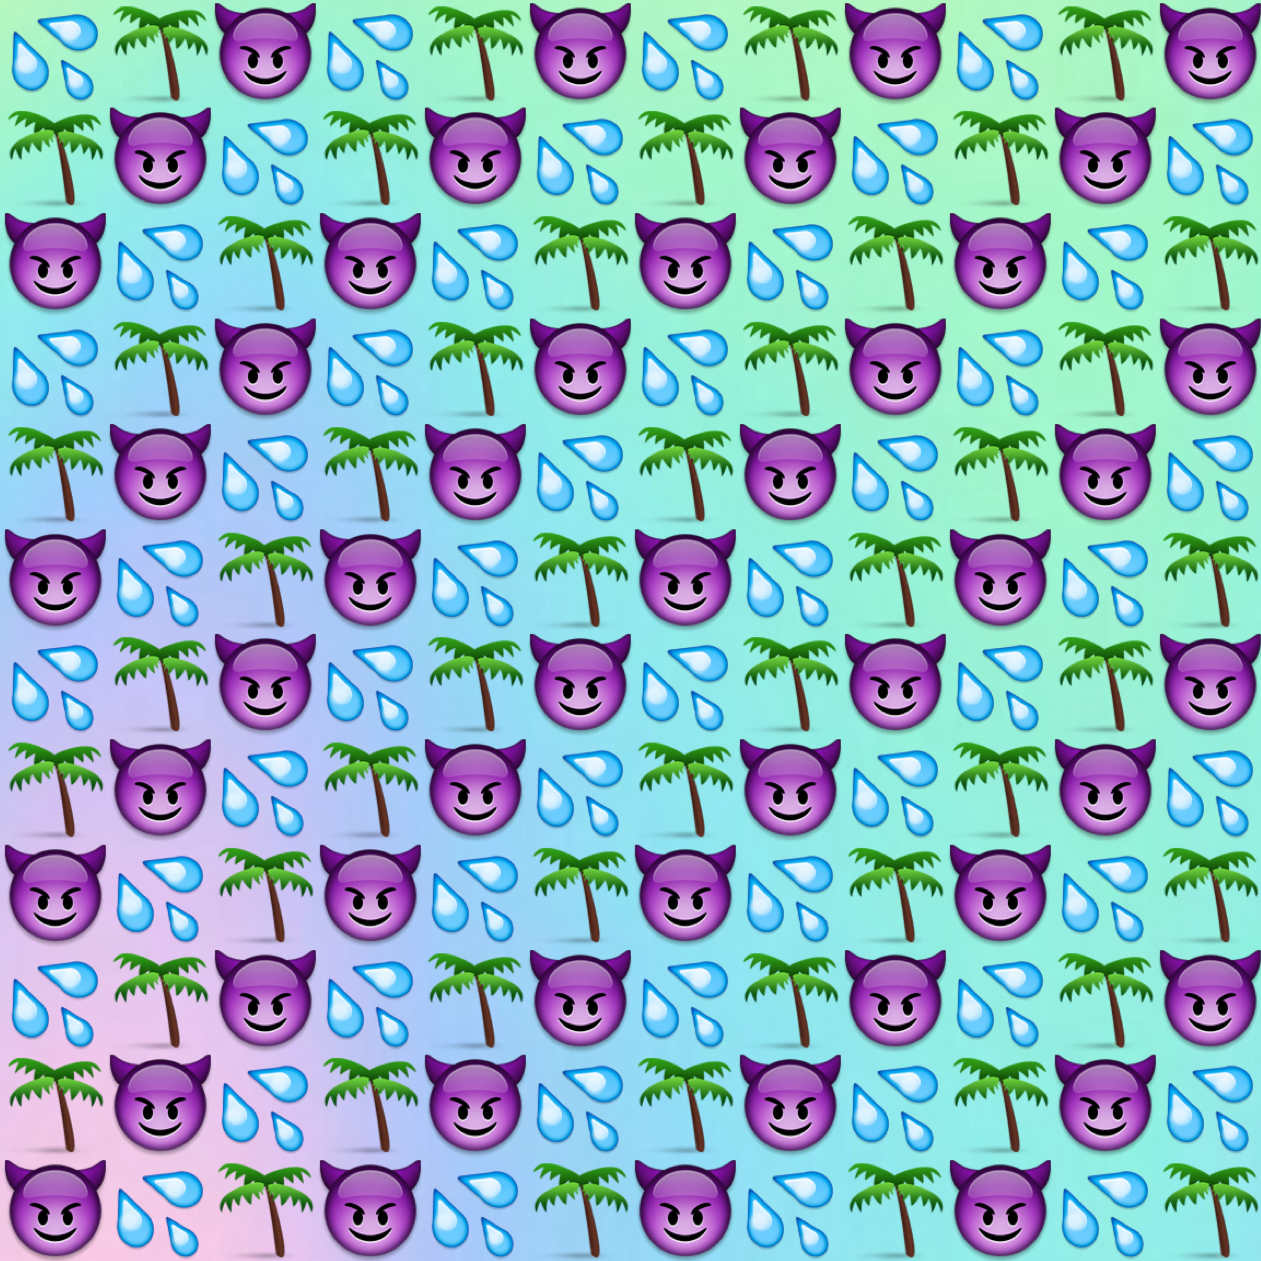 43 Images About Emoji Backgrounds On We Heart It See More About